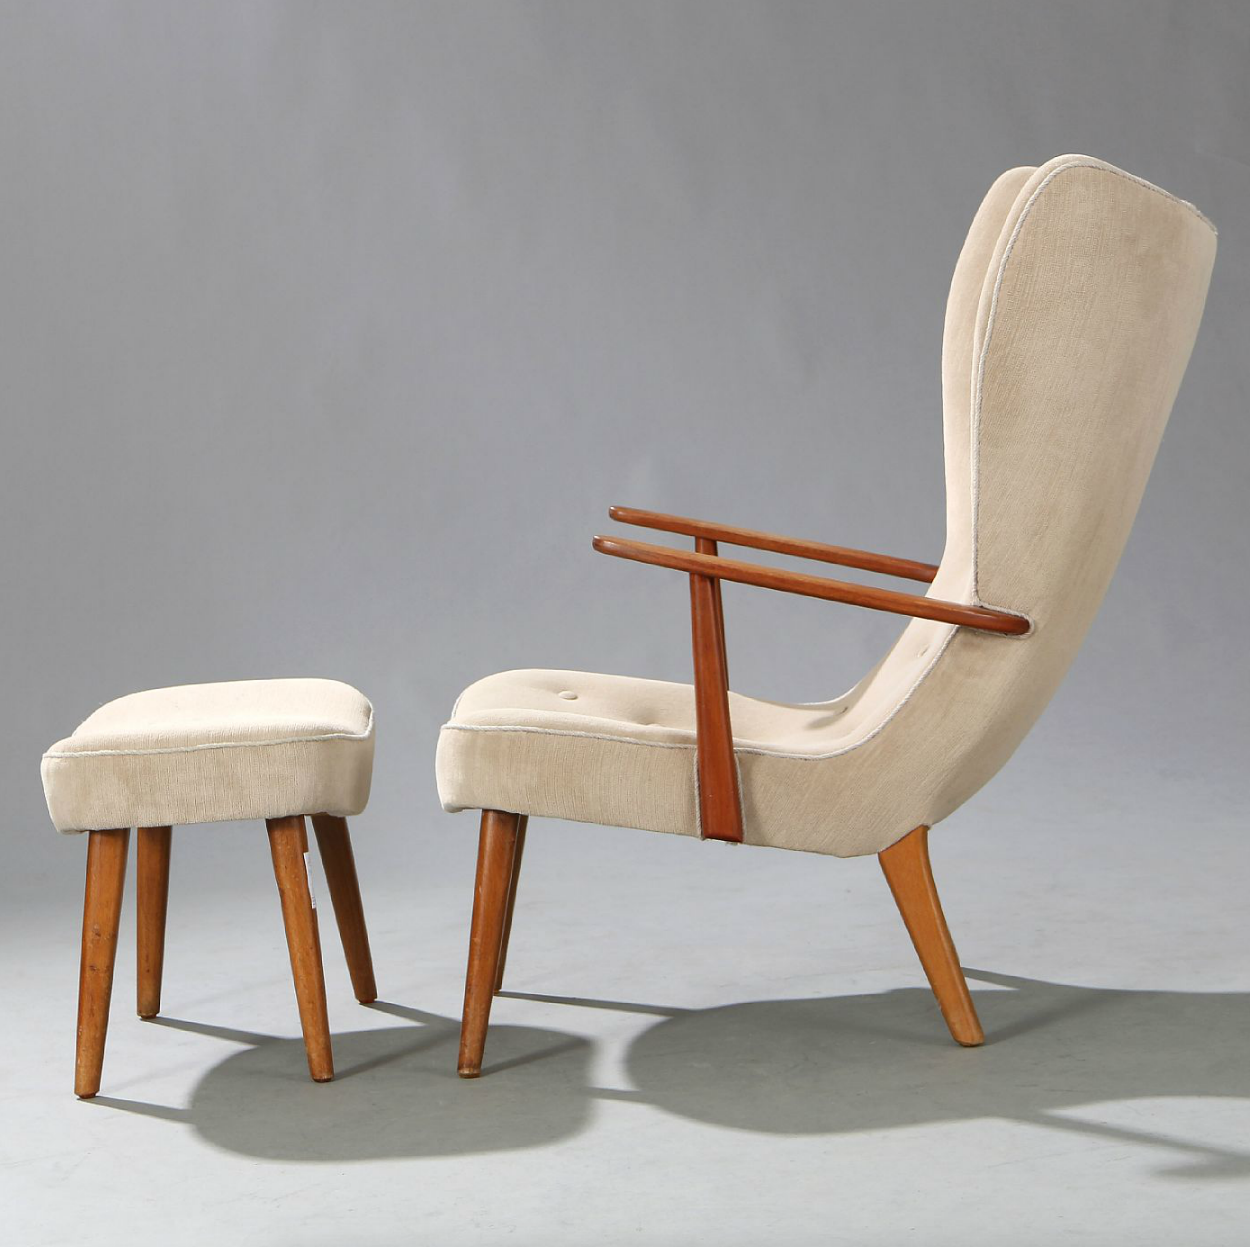 Ib madsen and acton schubell oak and teak easy chair with for Simple modern furniture